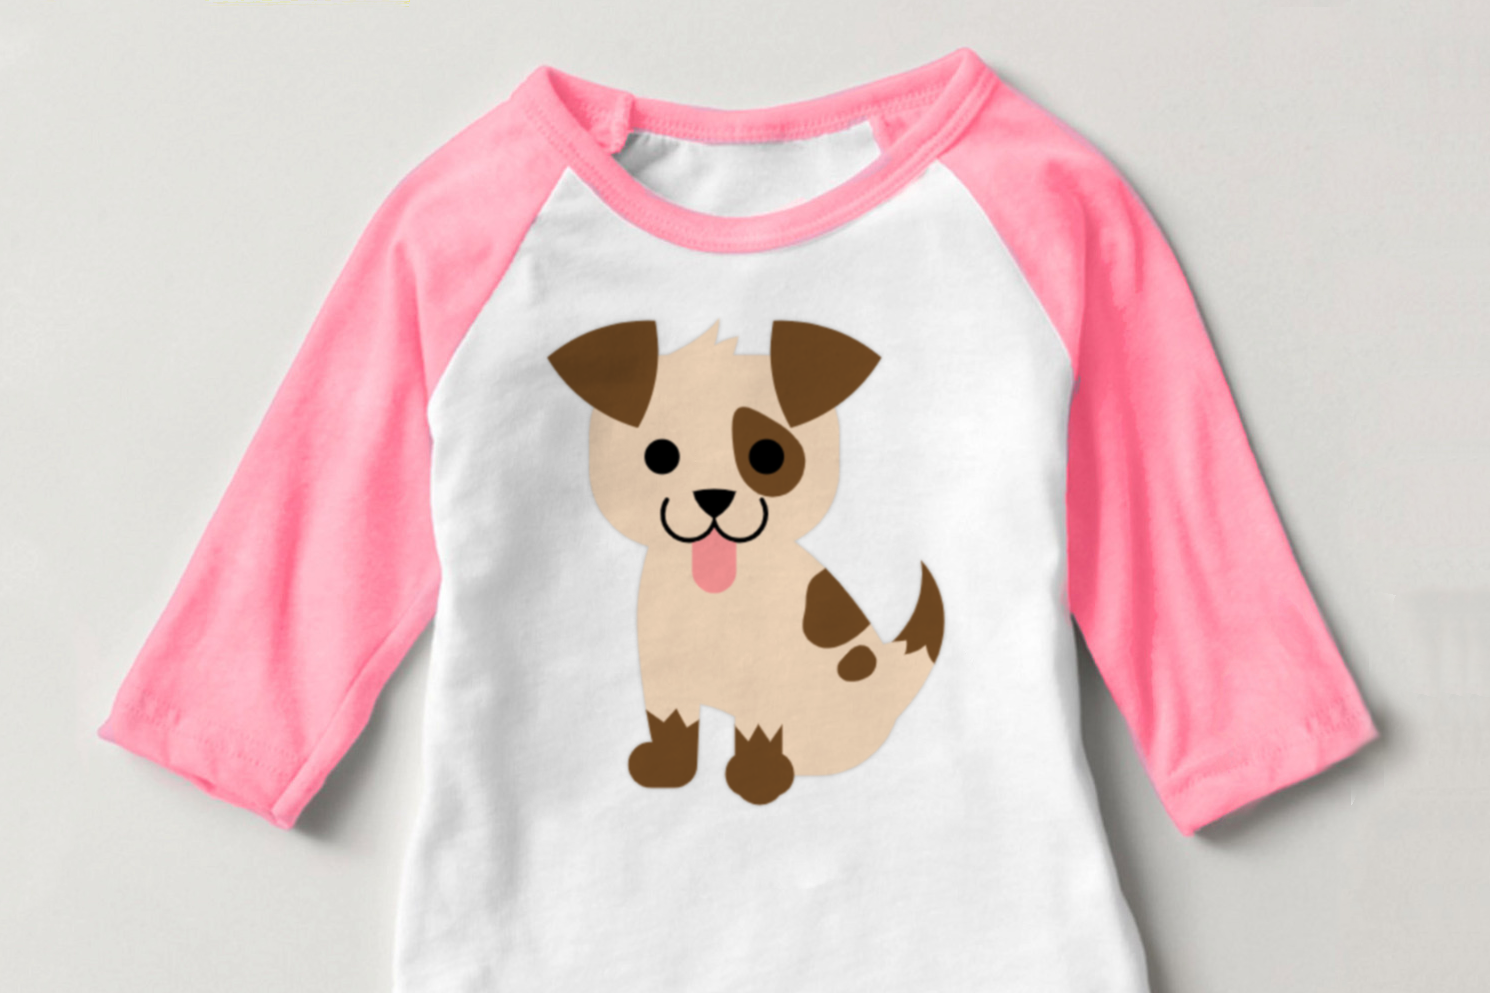 Download Free Sitting Dog Graphic By Risarocksit Creative Fabrica for Cricut Explore, Silhouette and other cutting machines.